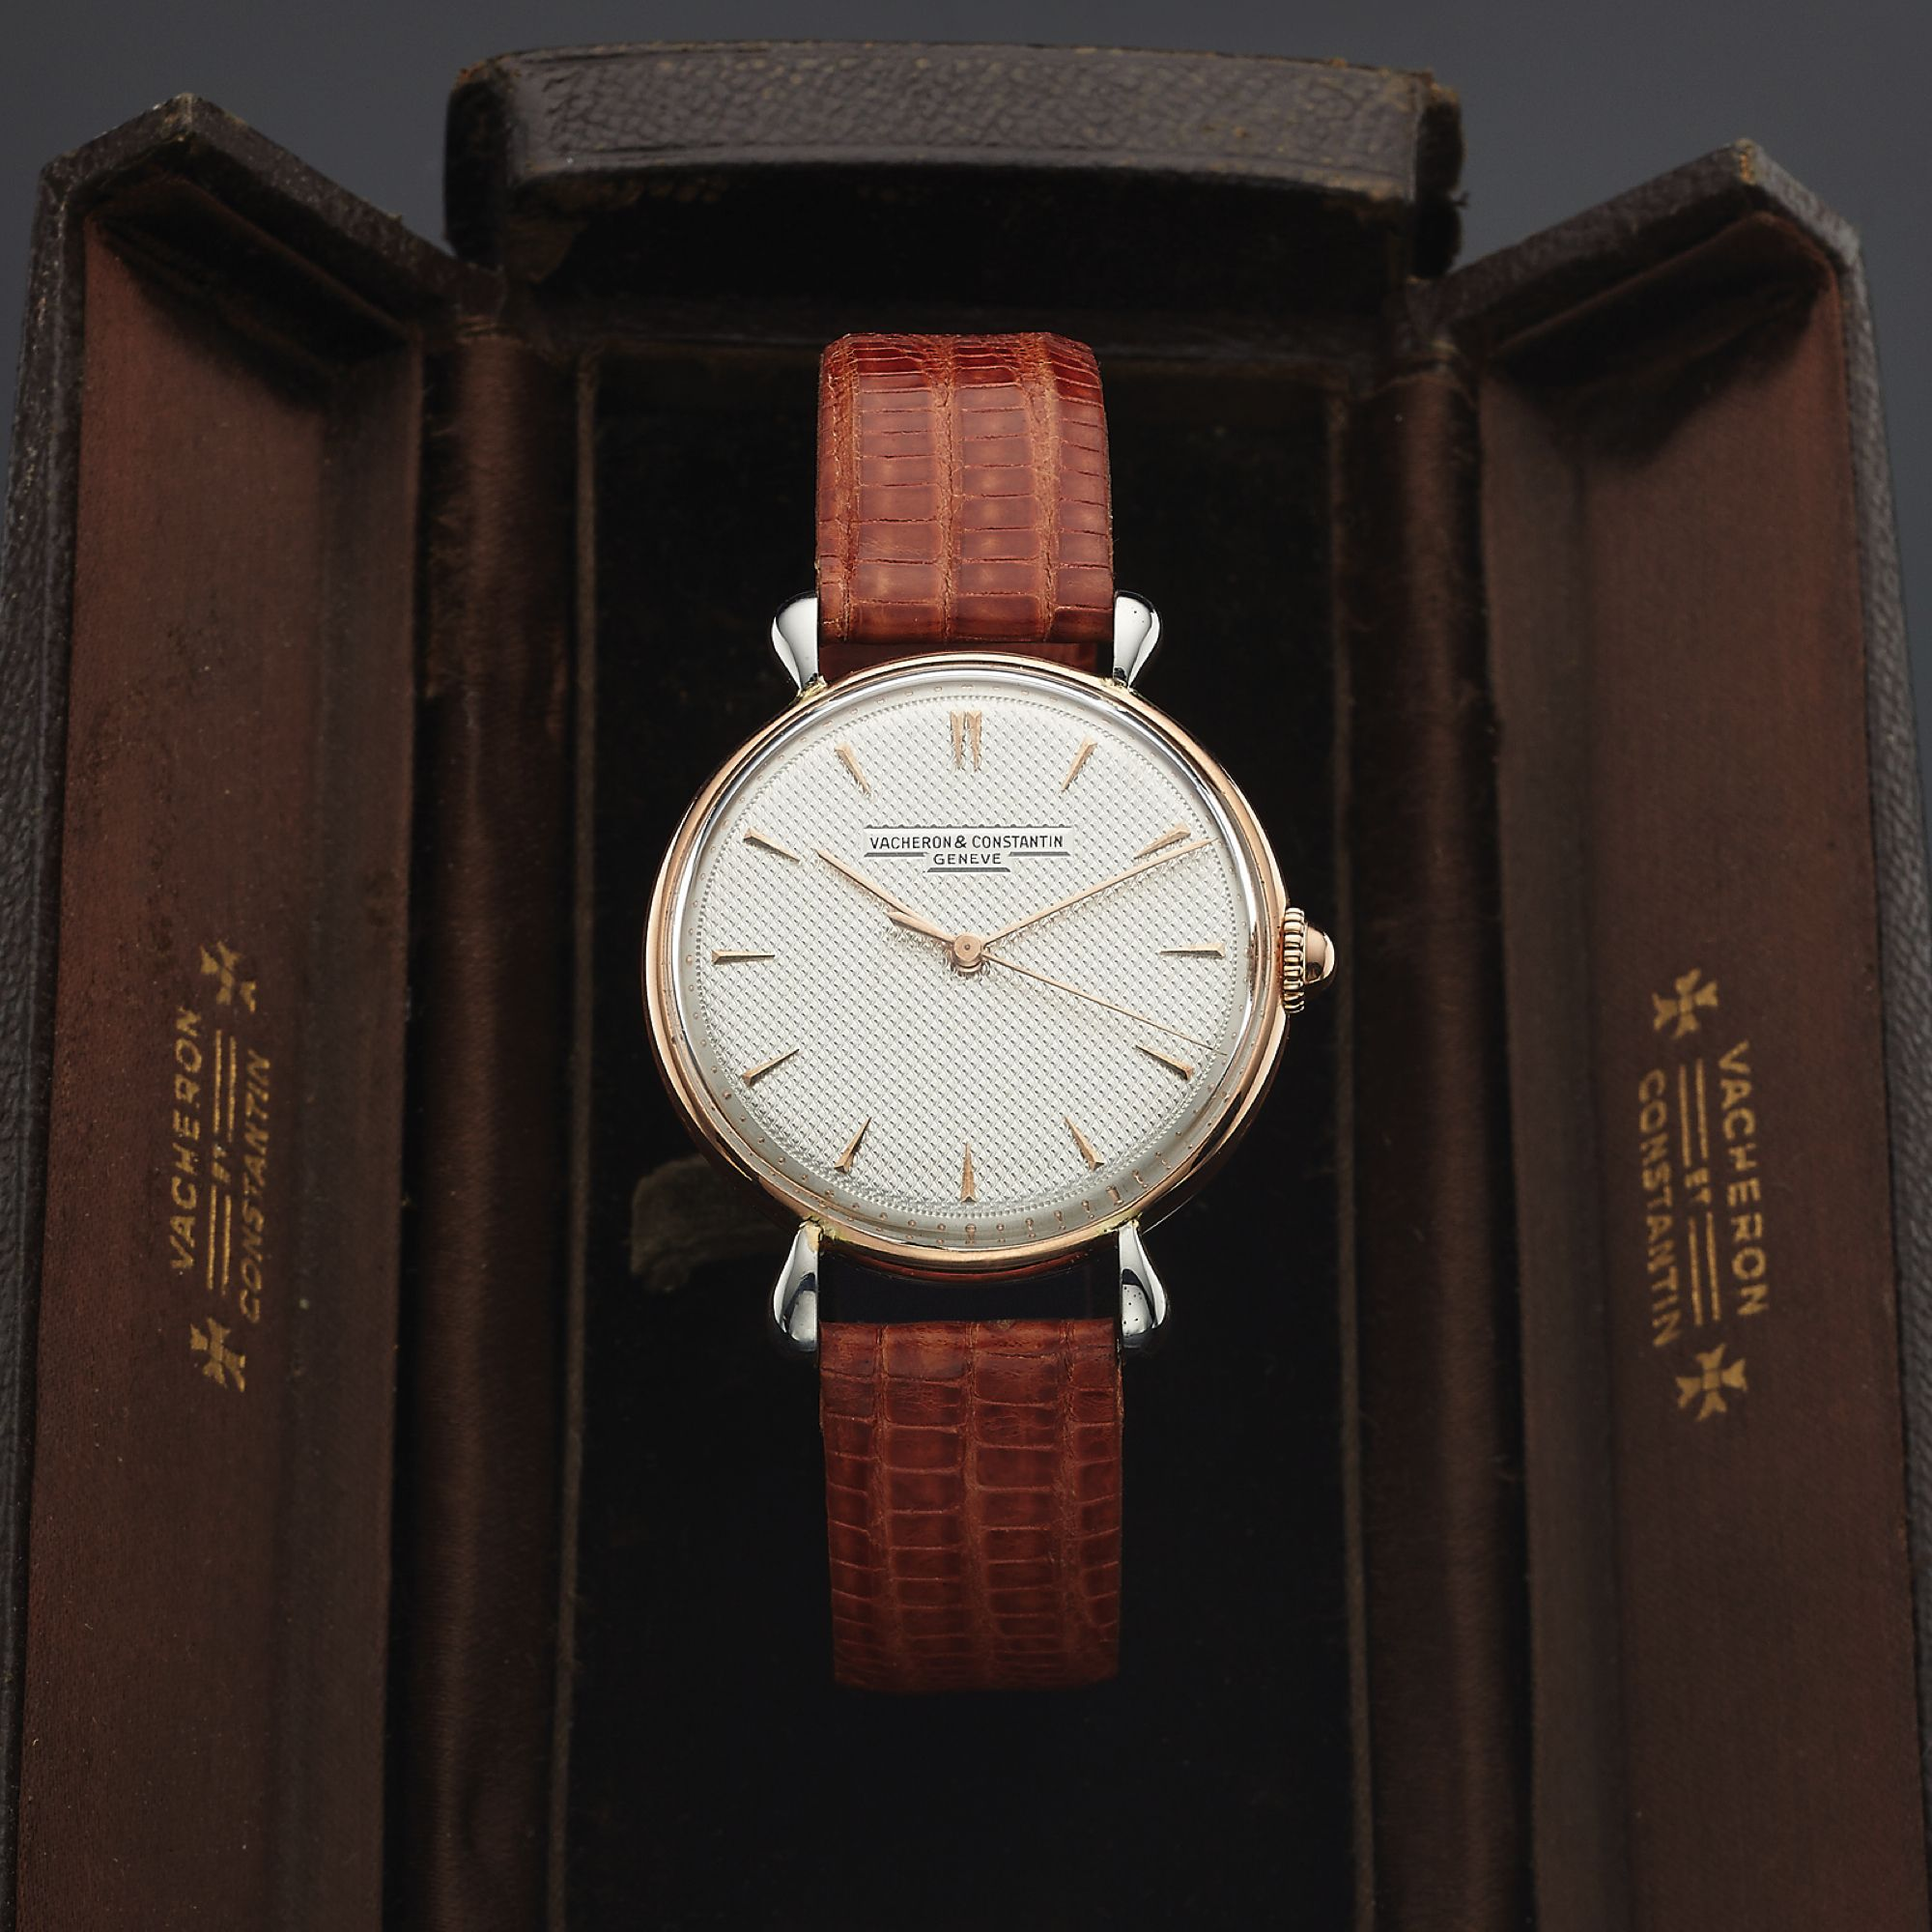 Vacheron Constantin Tear Drop Lugs Vacheron Constantin Geneve No 491388 Case No 297515 Made In The 1950s Vintage Timepiece Things To Sell Wrist Watch